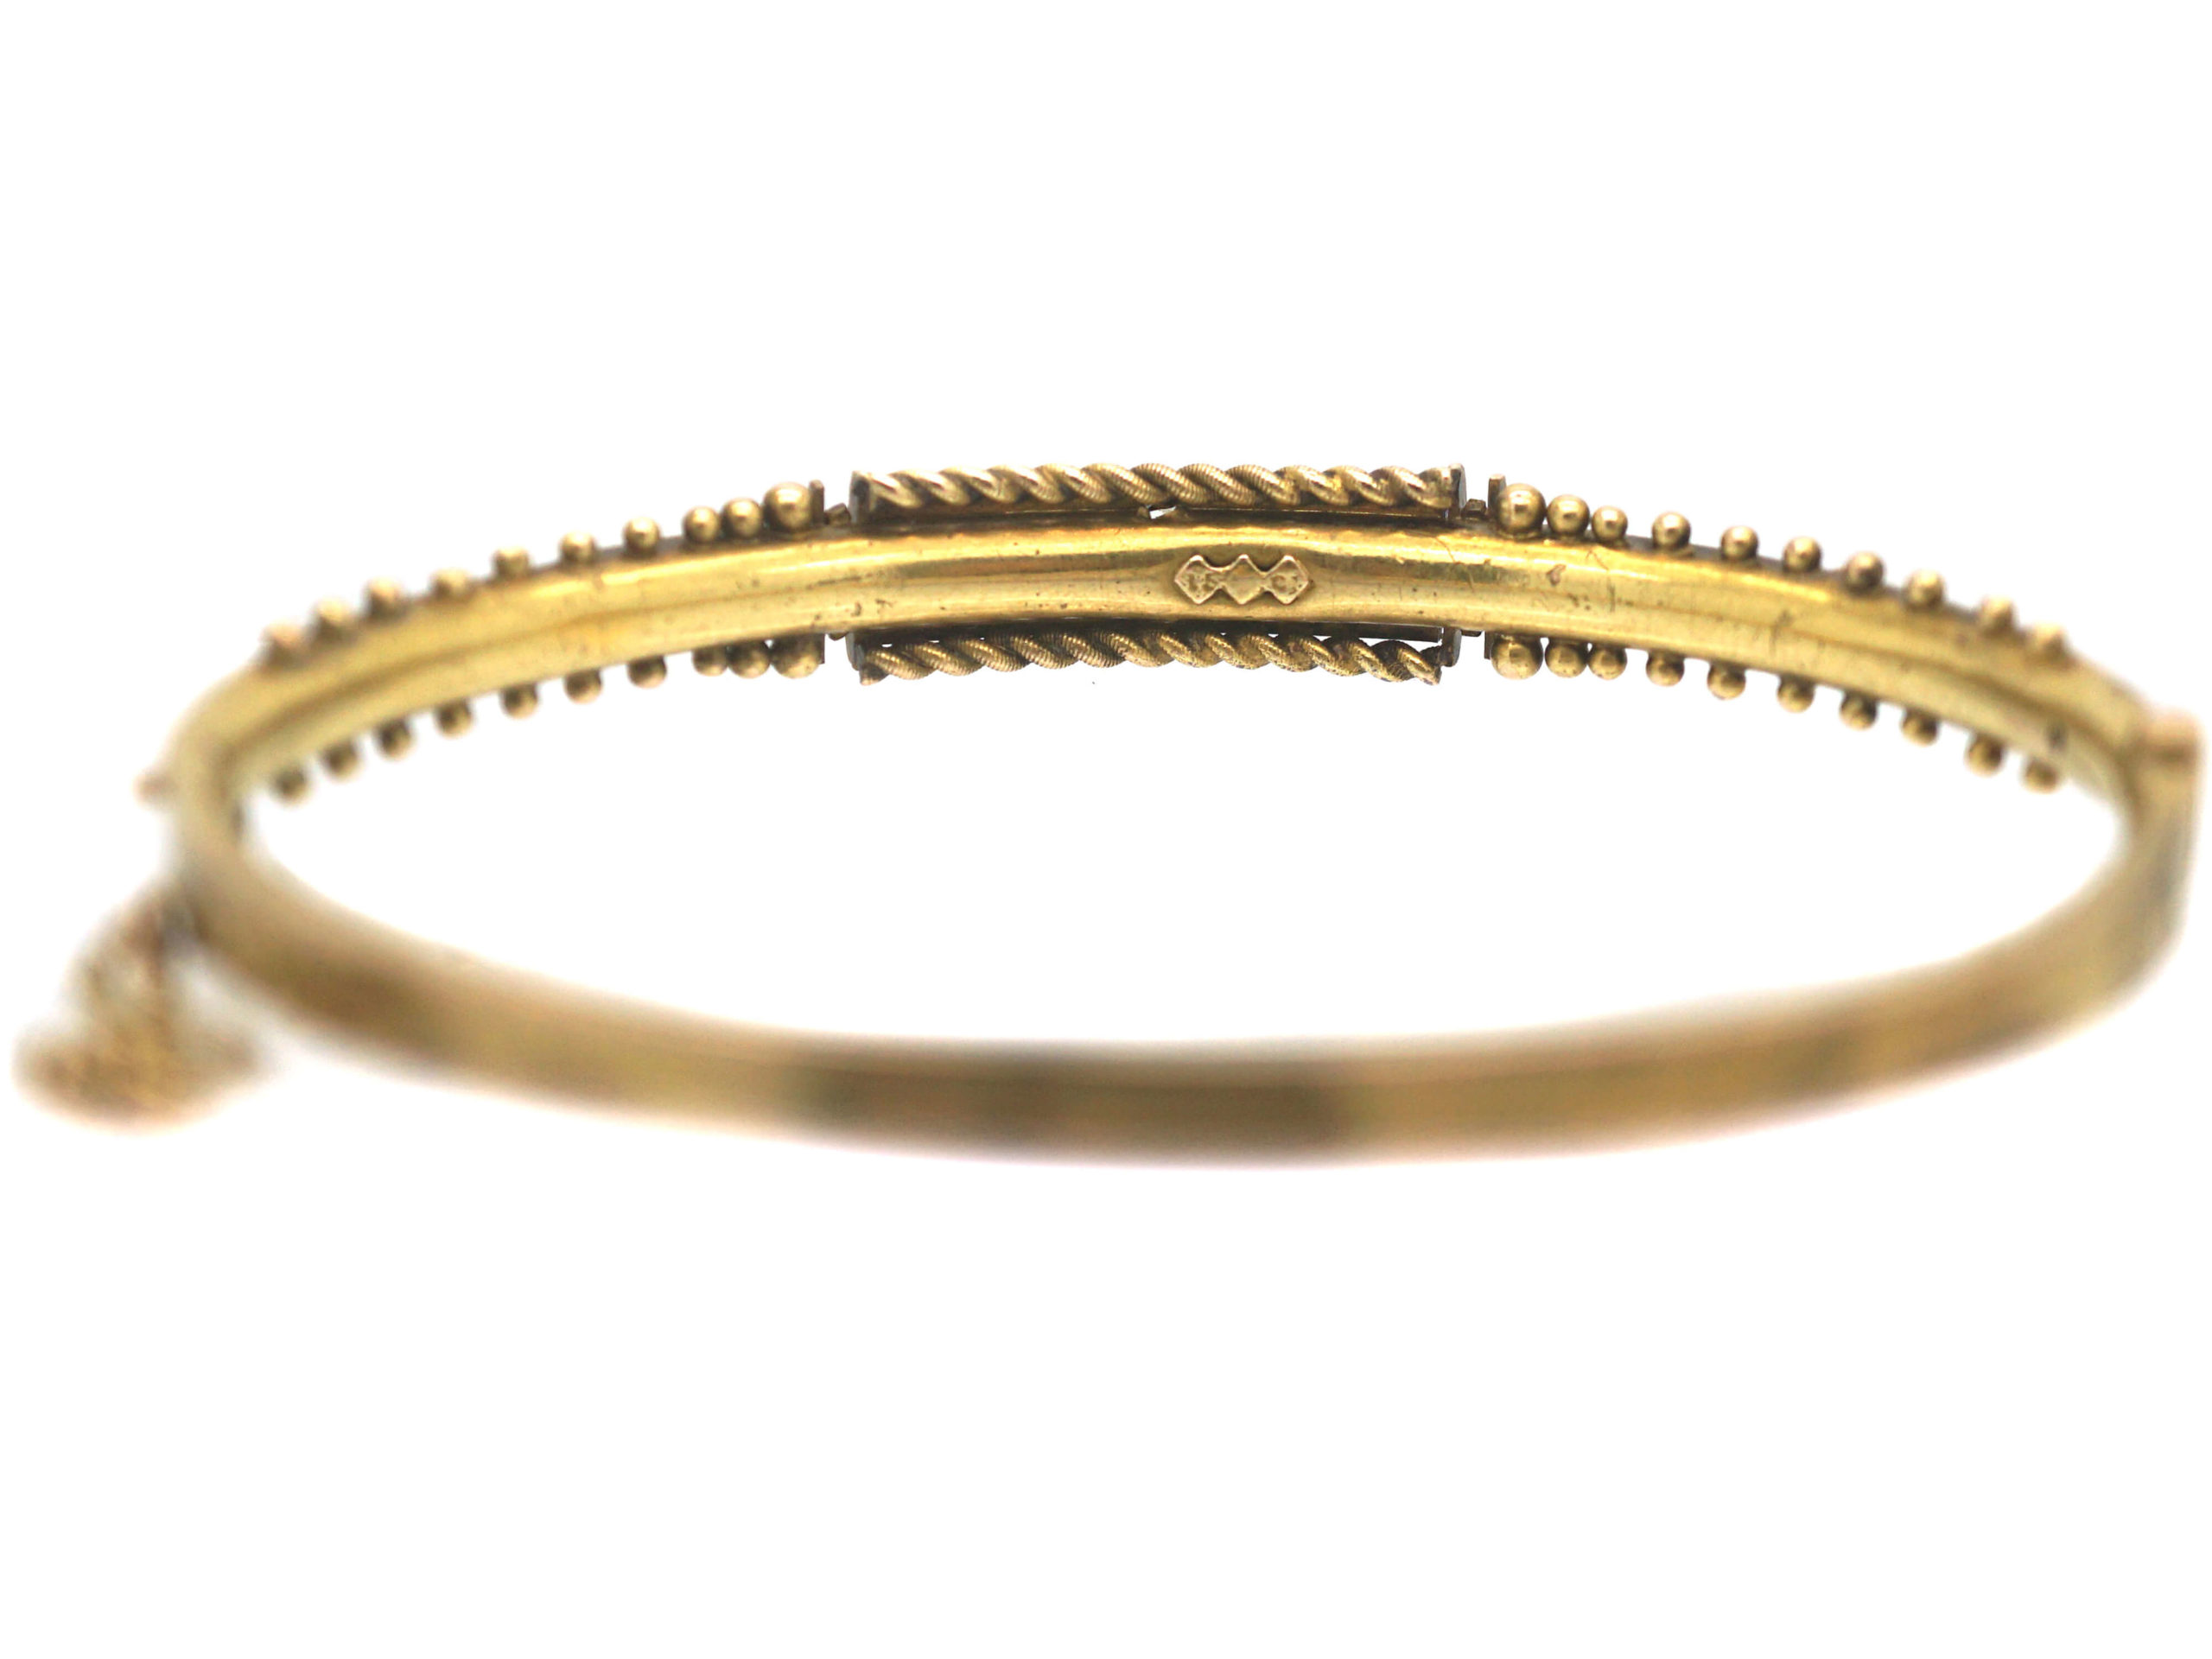 Victorian 15ct Gold Bangle set with Diamonds & Natural Split Pearls